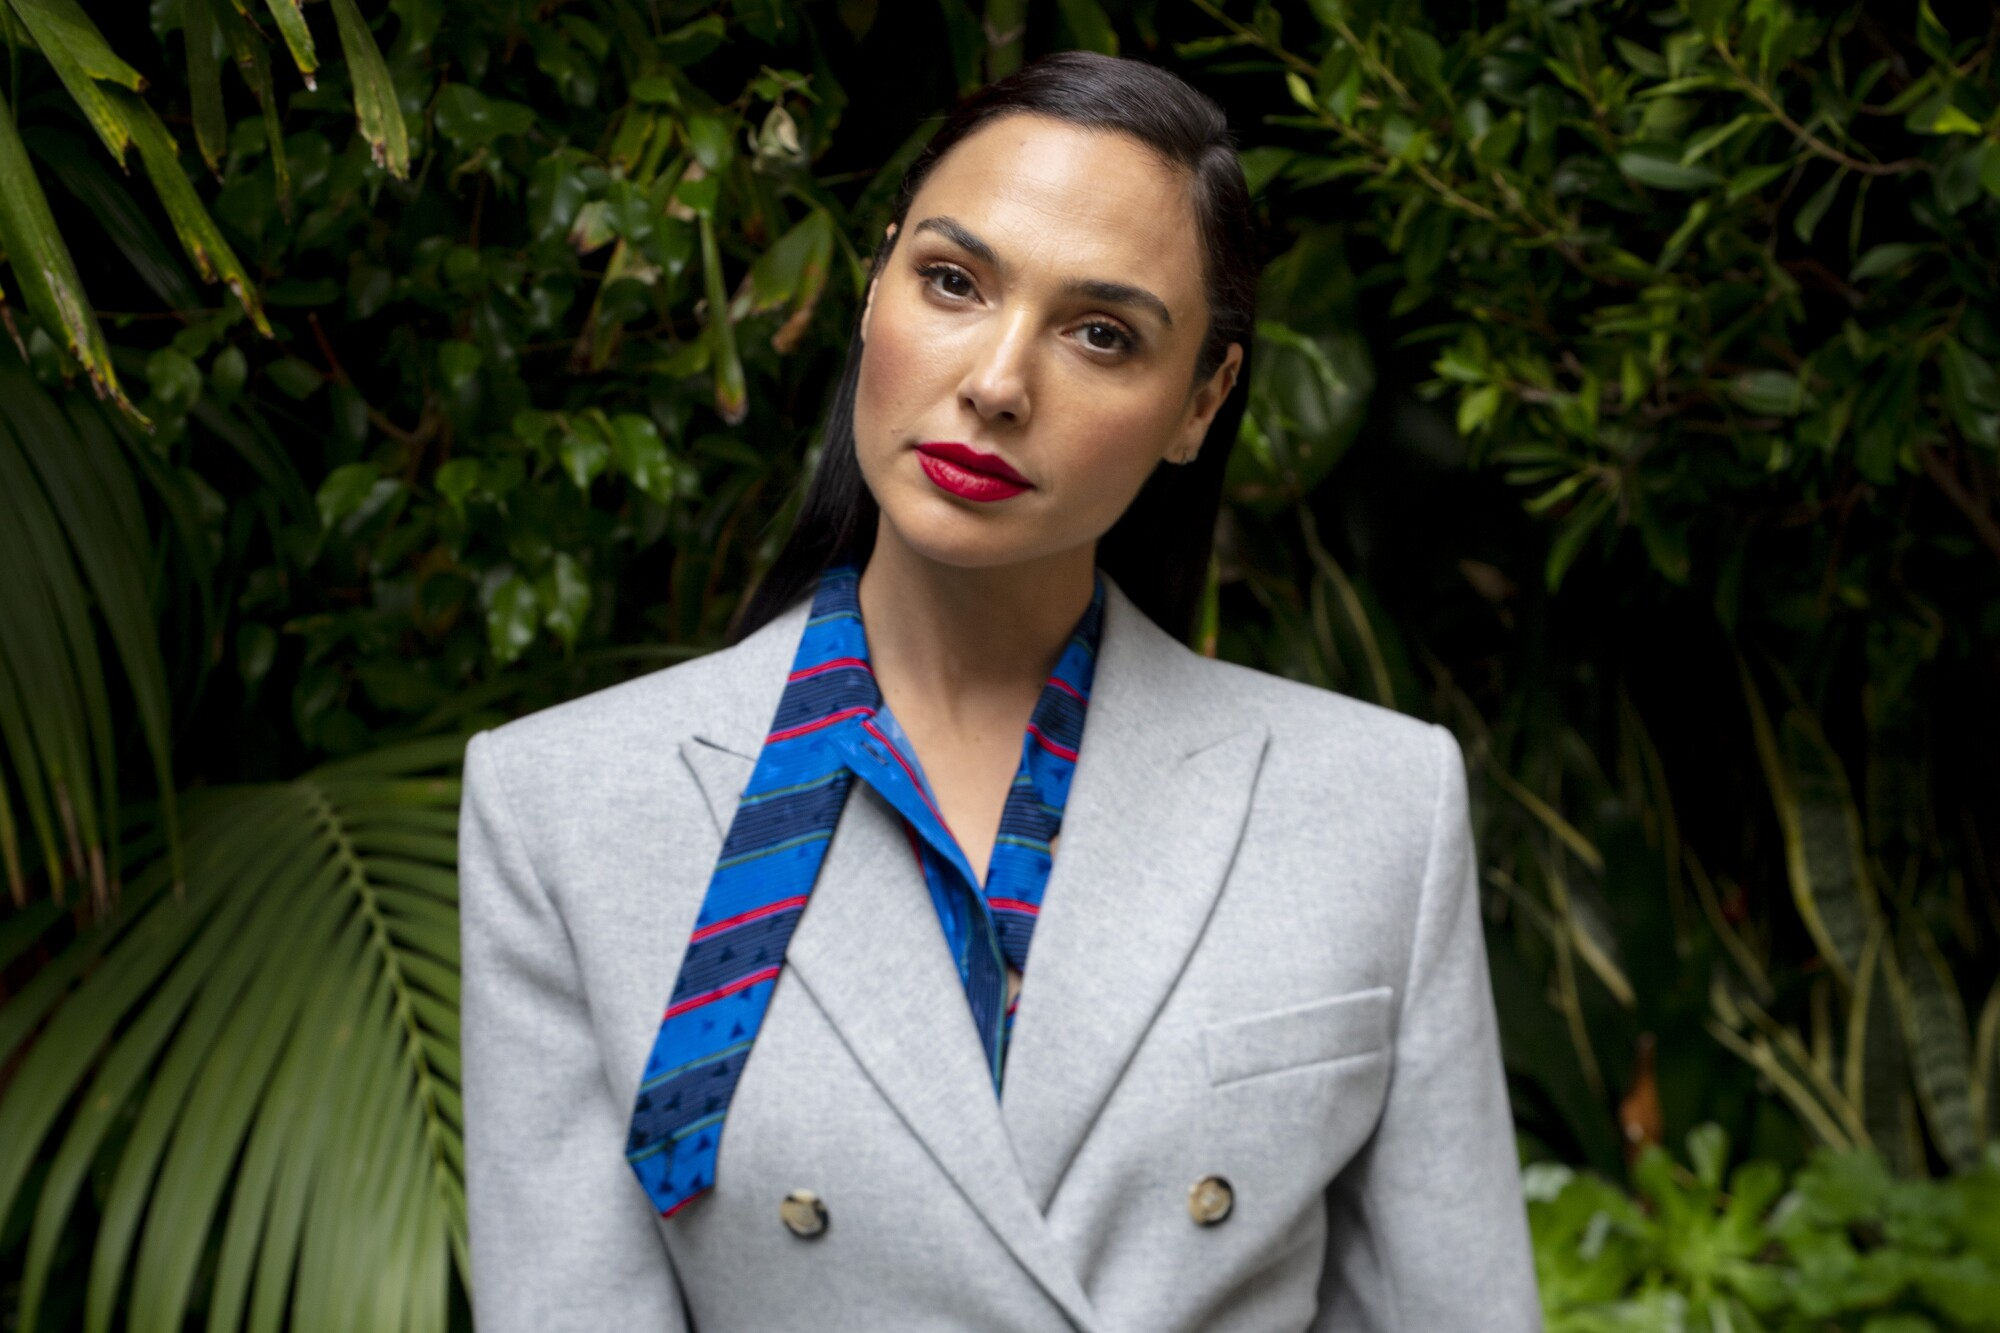 Gal Gadot stands for a portrait in front of greenery.